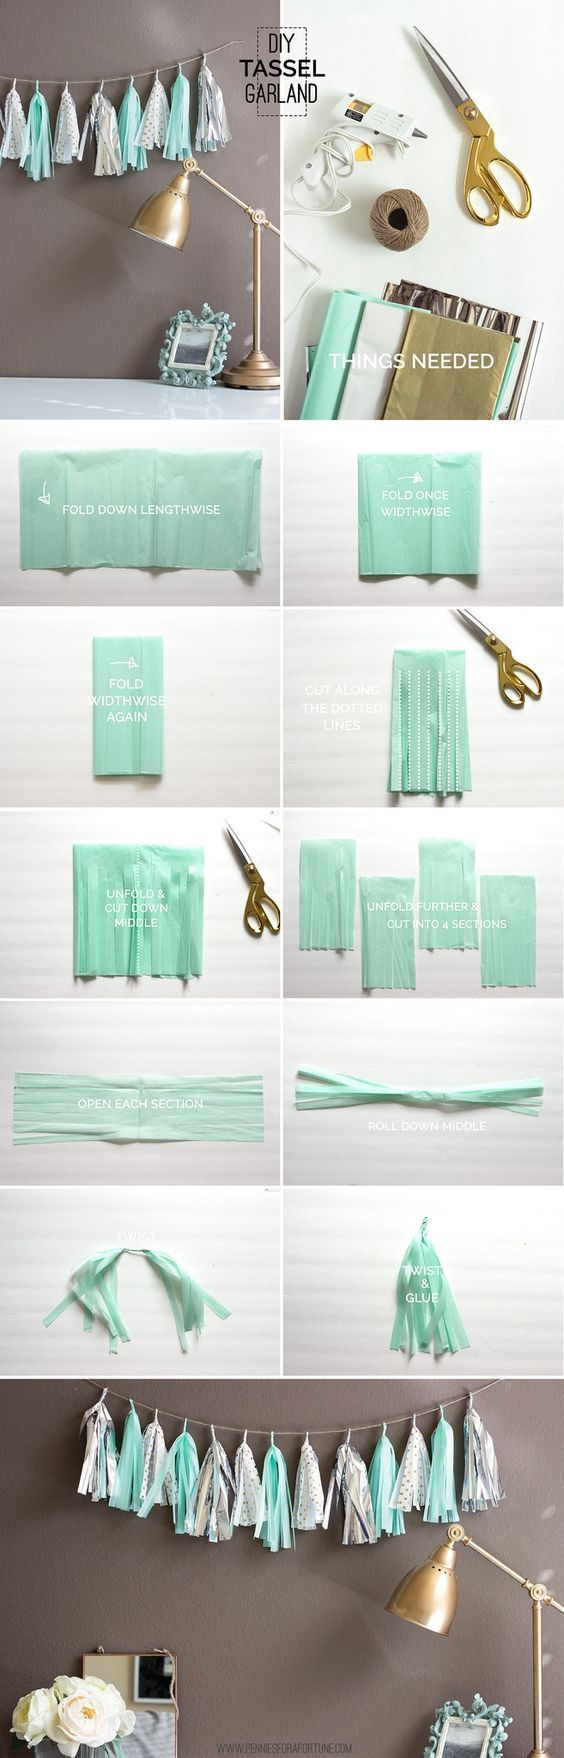 Tassel garland is a great DIY dorm room decor idea!